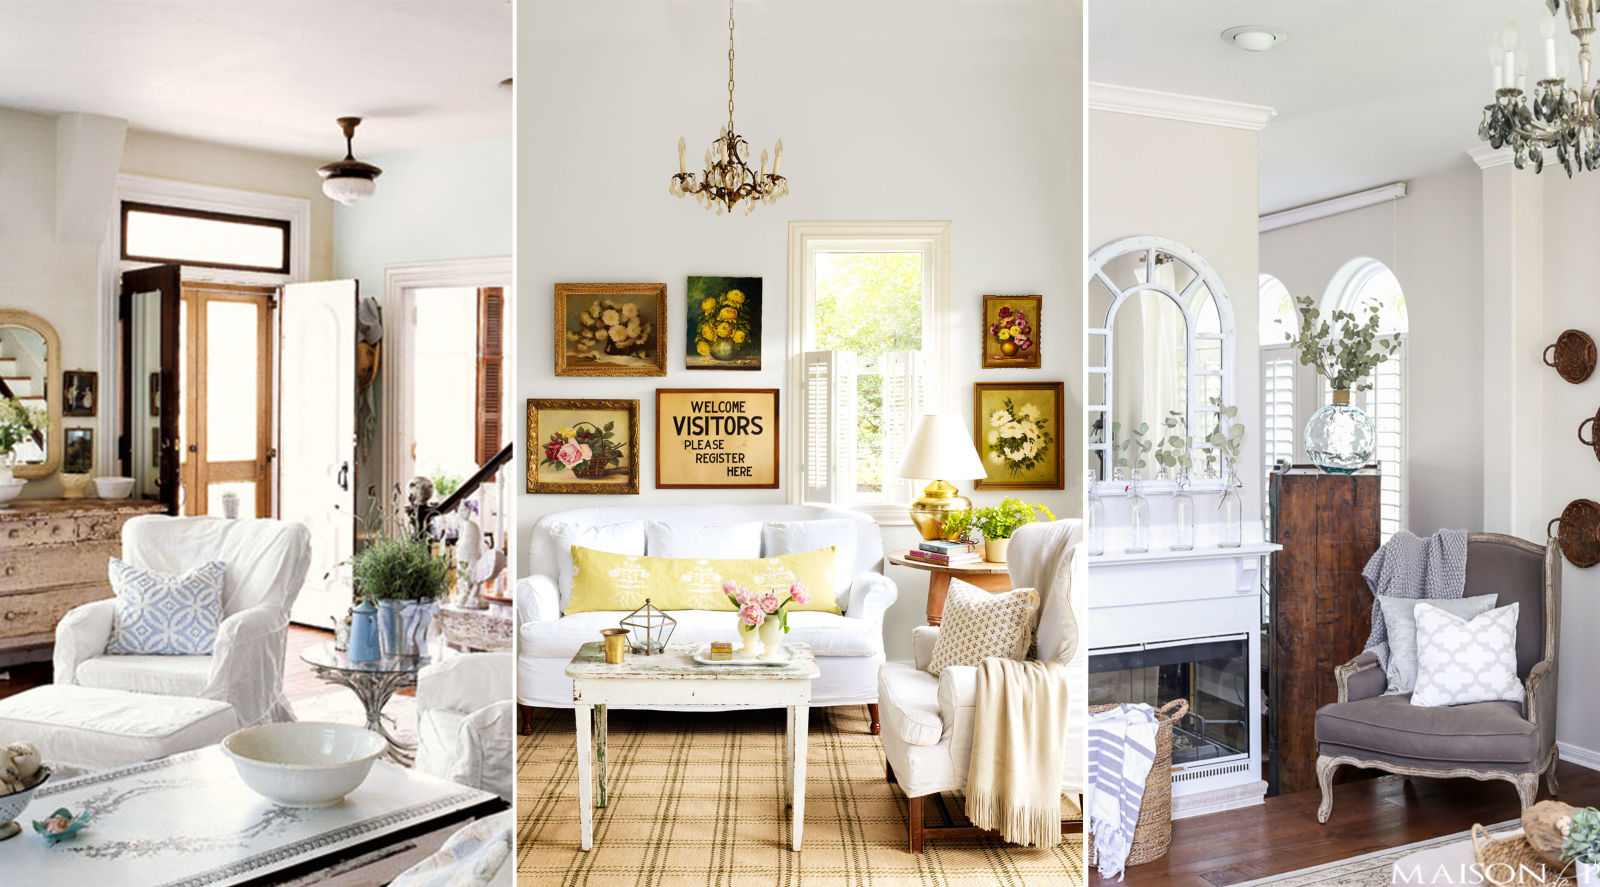 Design Country Chic Living Room 10 shabby chic living room ideas decorating inspiration for rooms